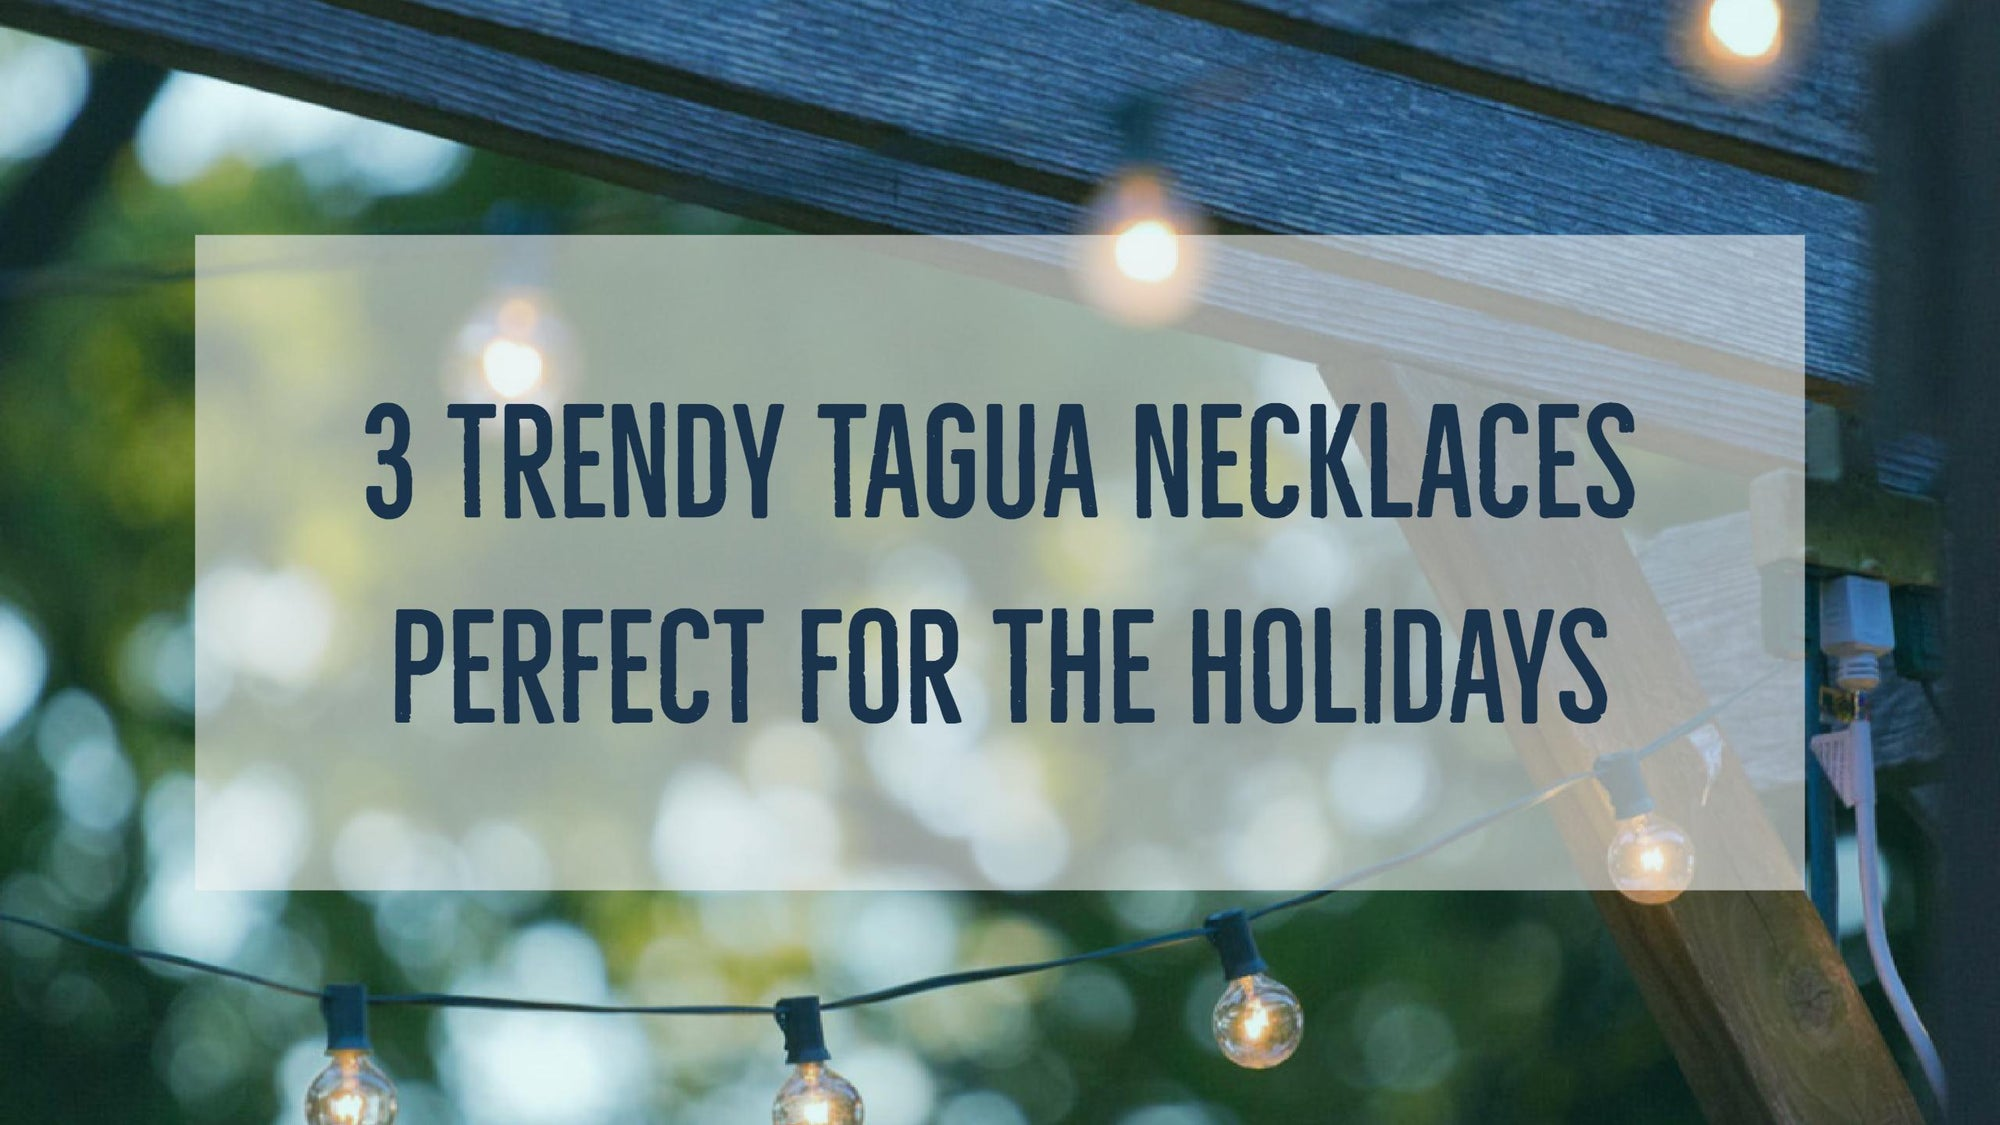 3 Trendy Tagua Necklaces Perfect for Holiday Fashion